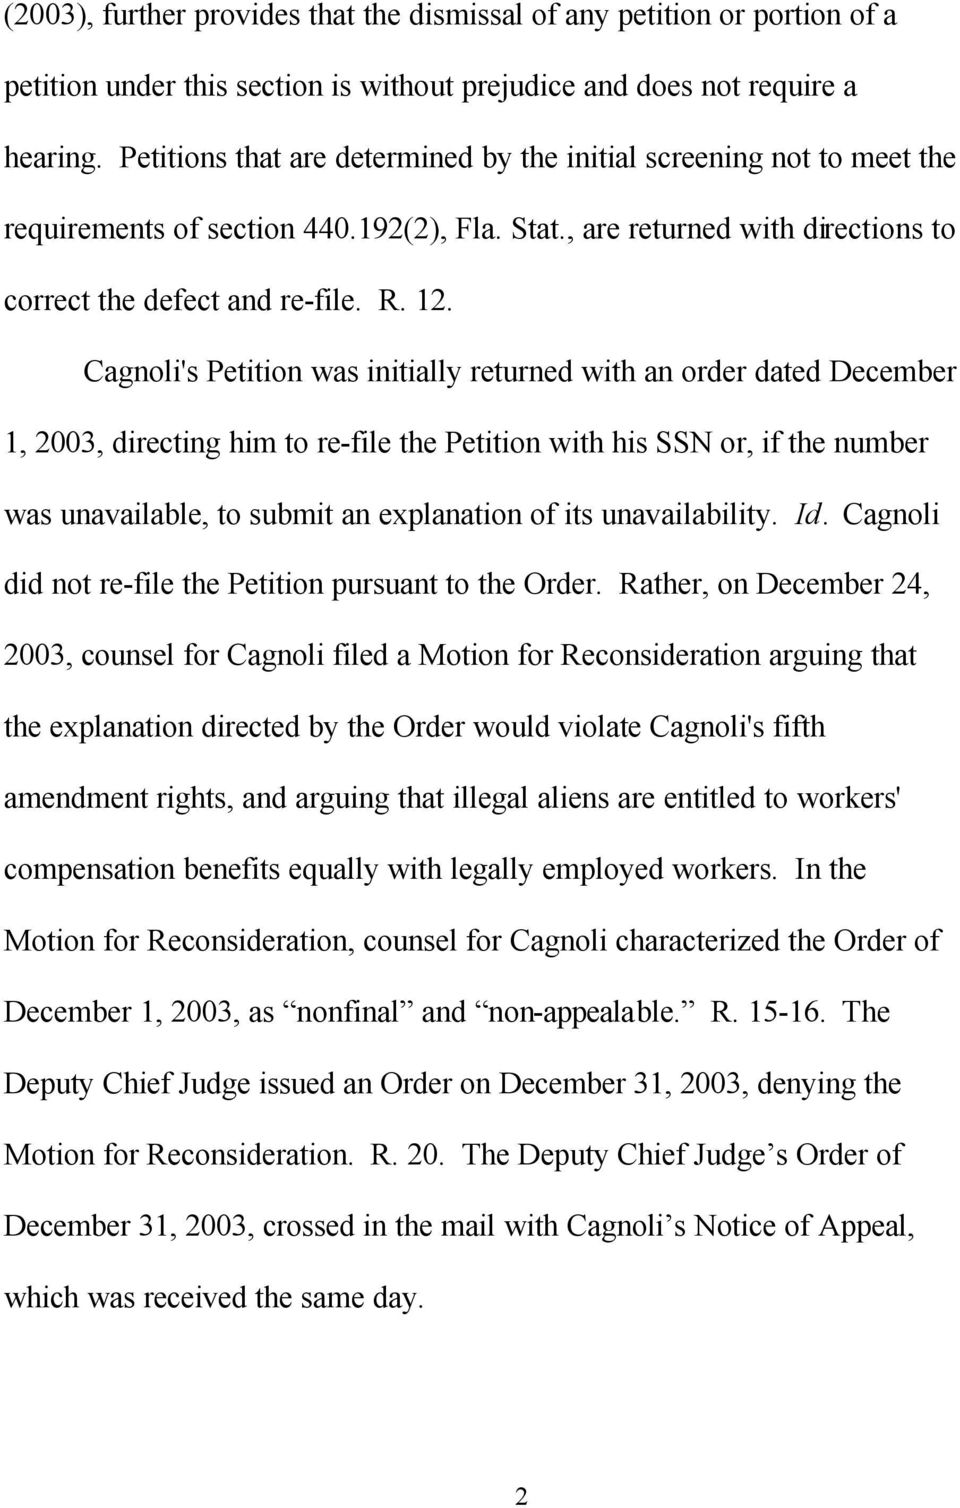 Cagnoli's Petition was initially returned with an order dated December 1, 2003, directing him to re-file the Petition with his SSN or, if the number was unavailable, to submit an explanation of its